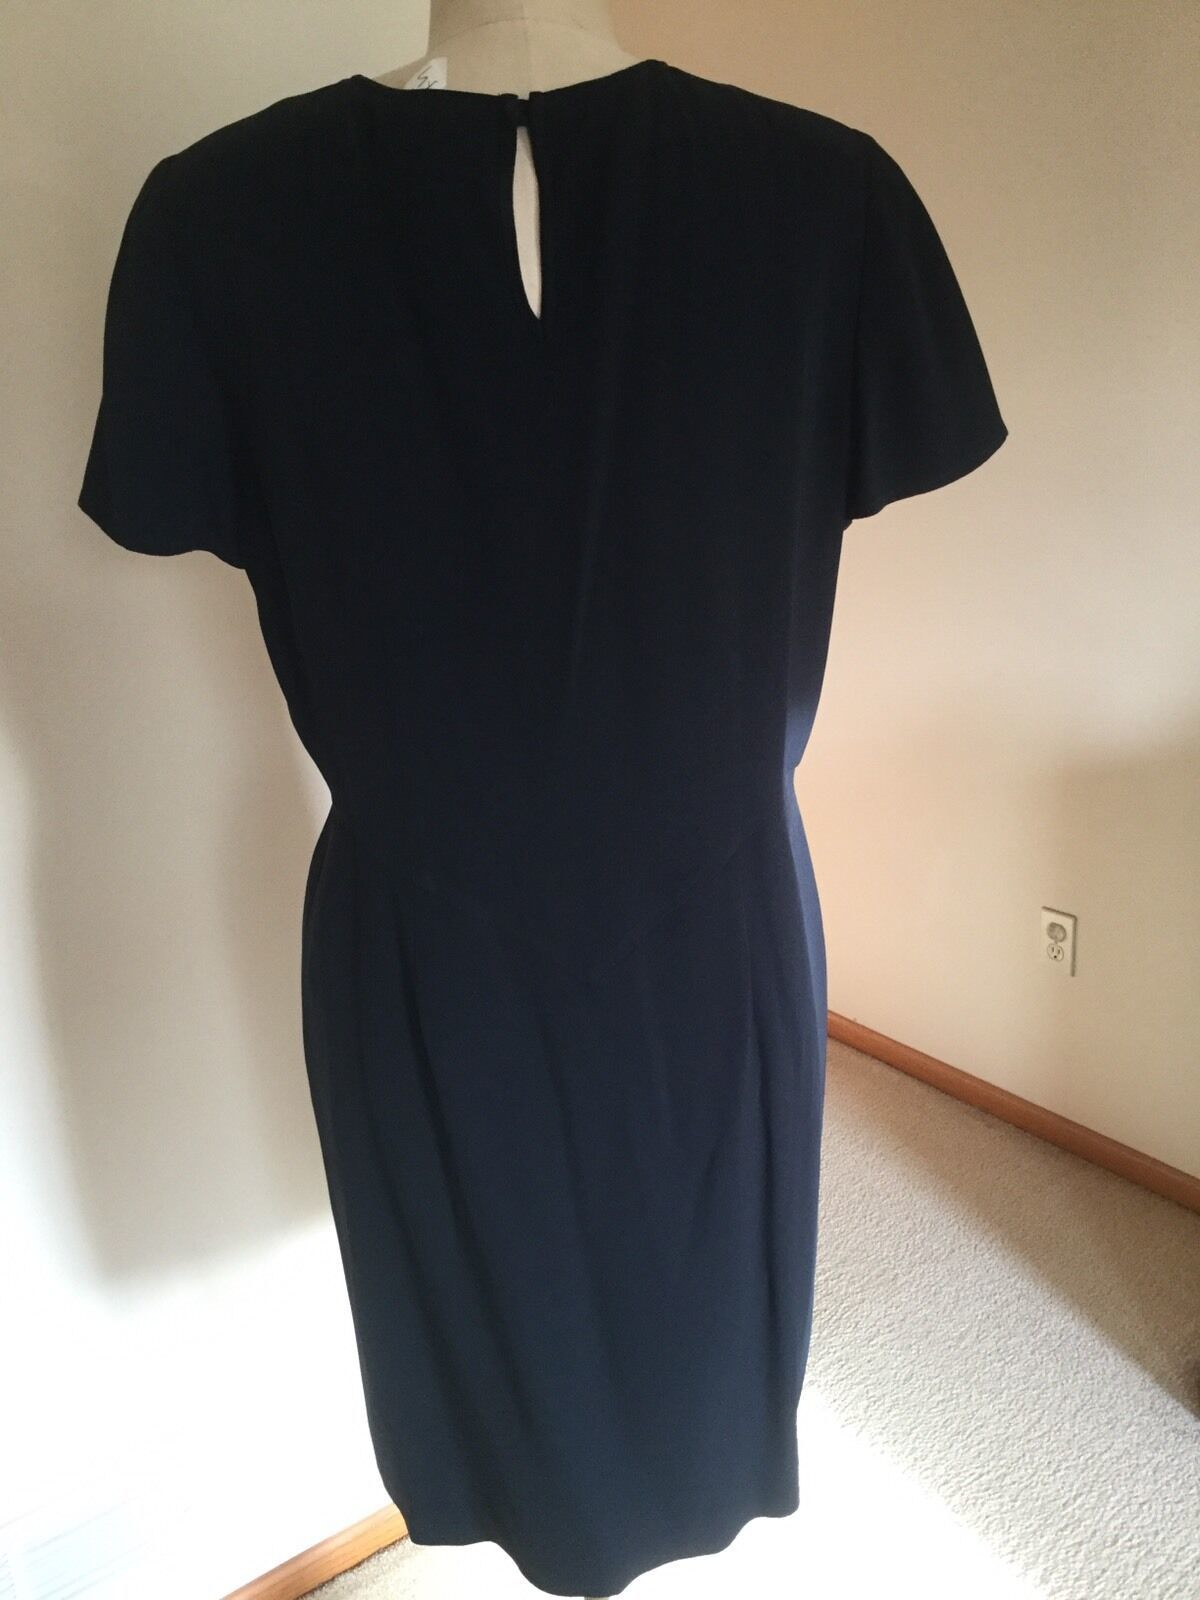 Armani dress,US Size 12,Navy,Short sleeves, image 3